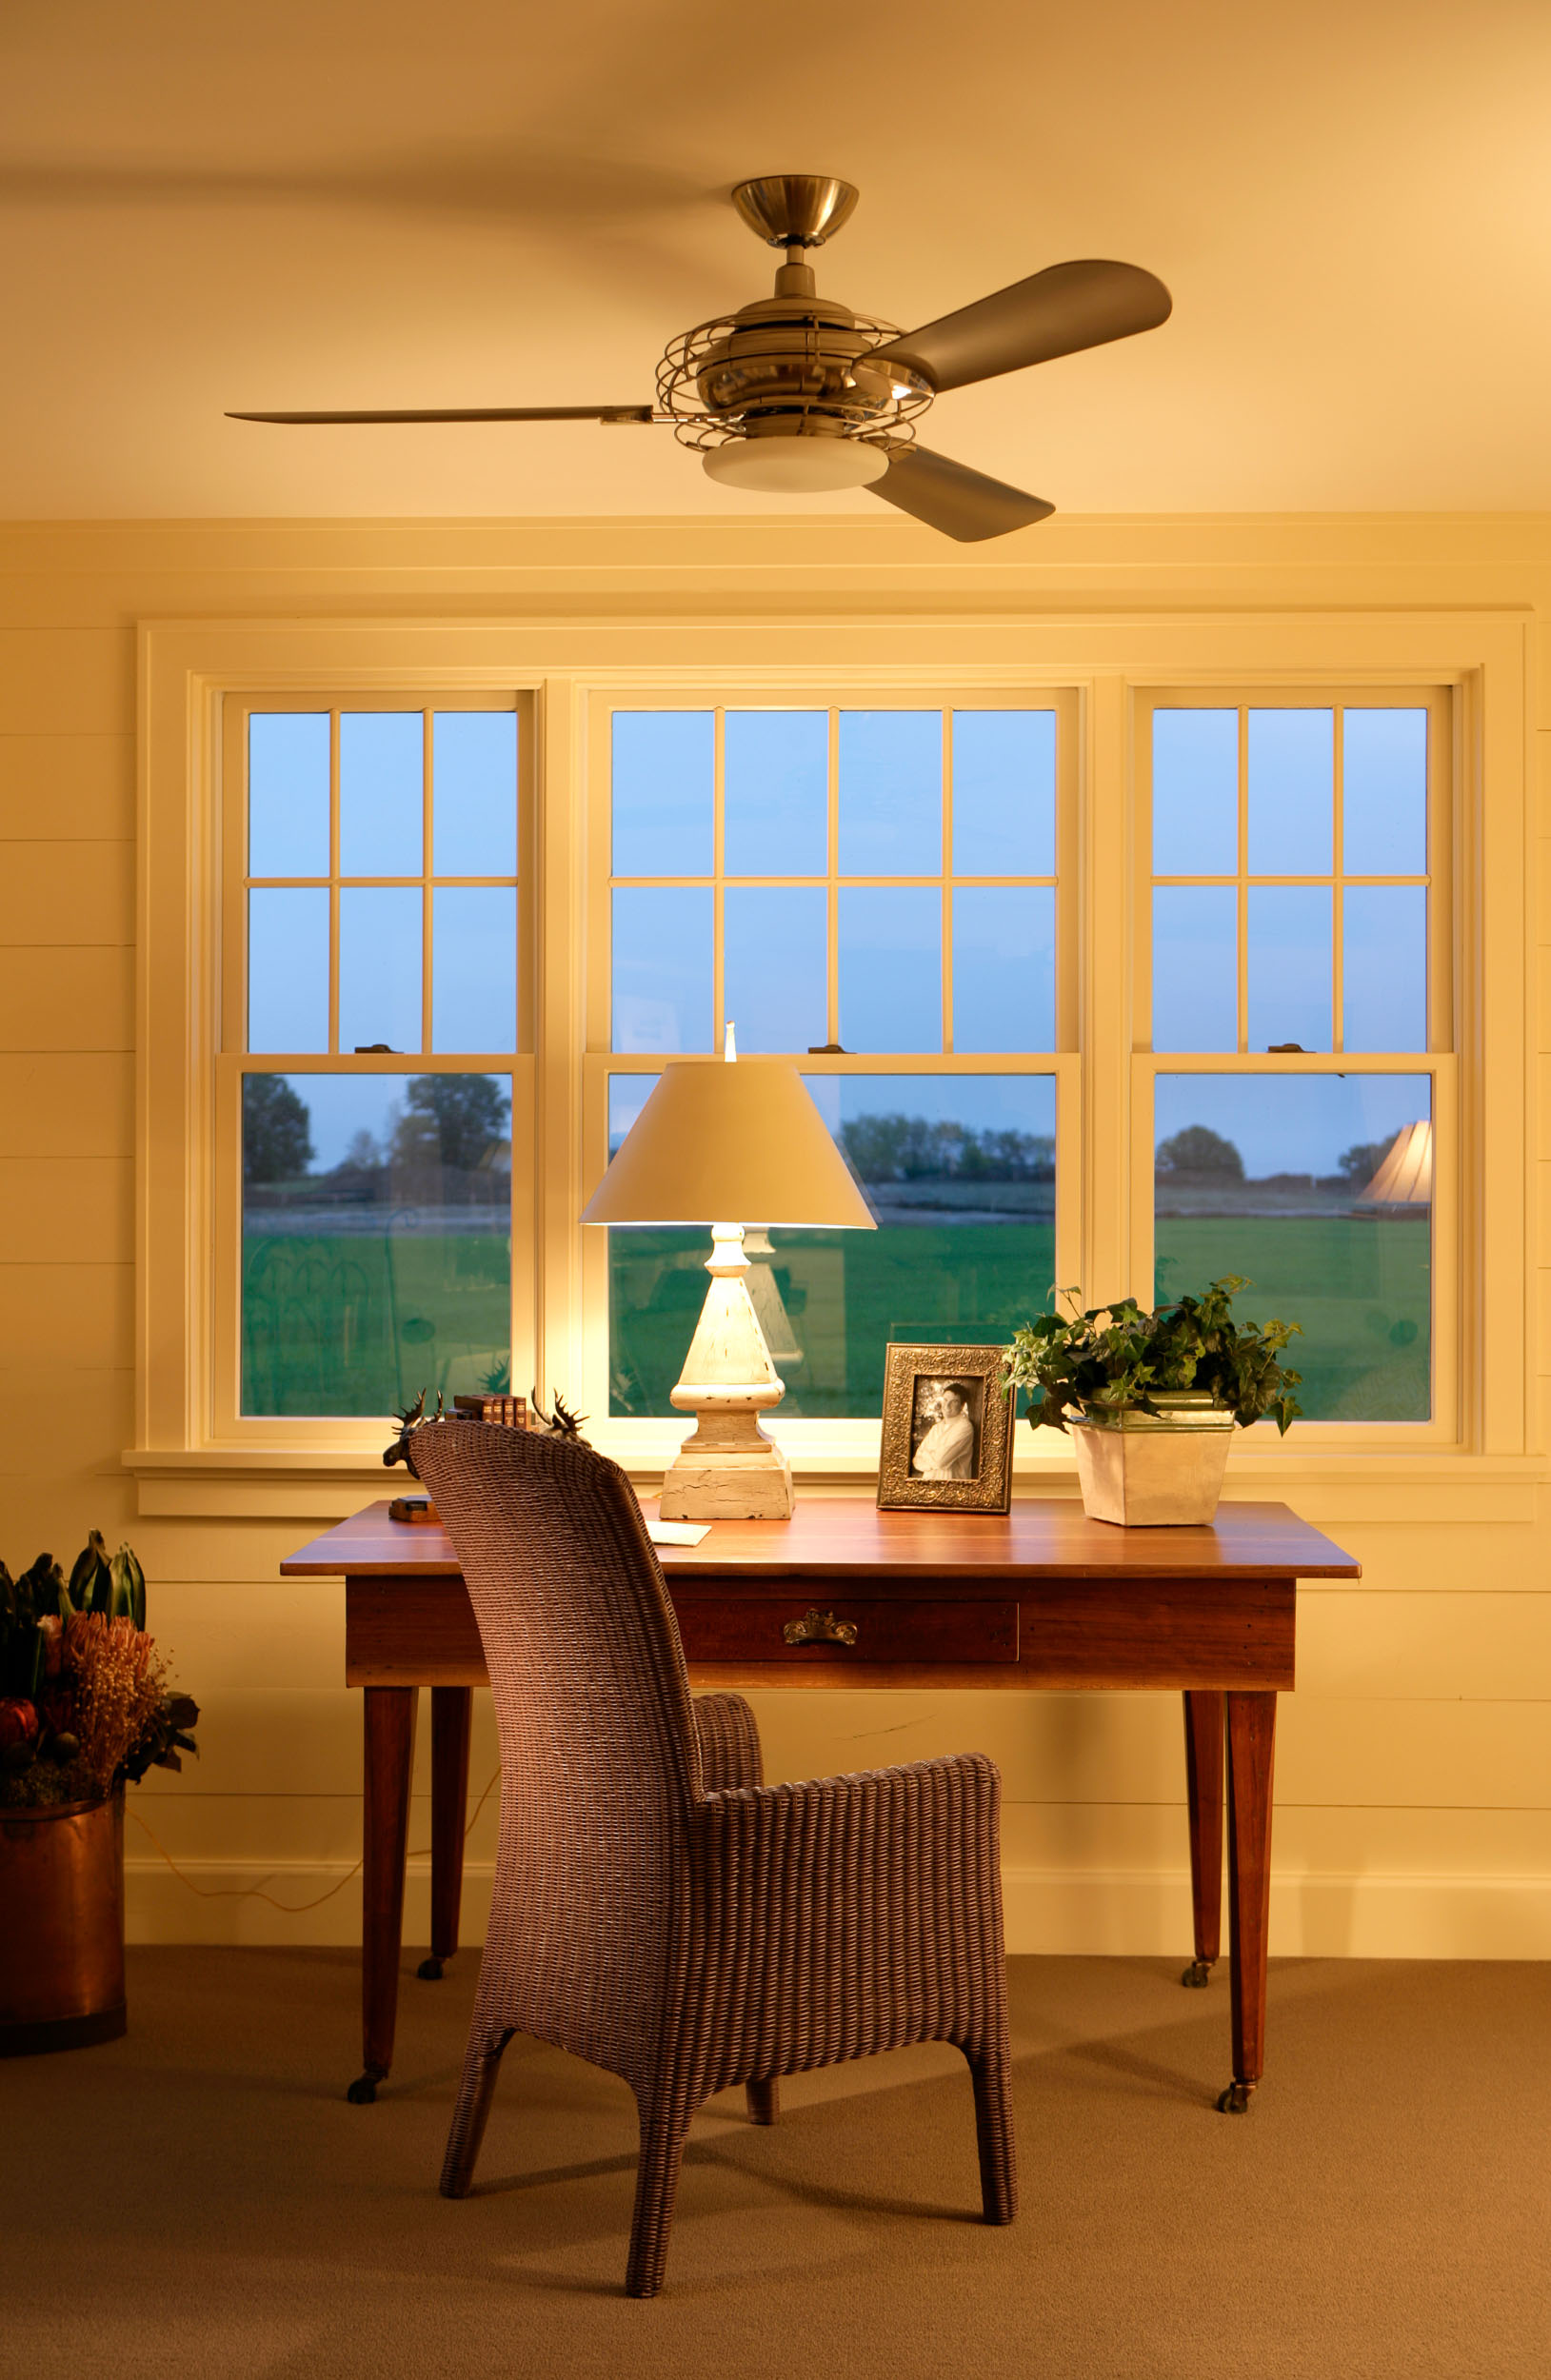 Cape Cod Interior Sunroom Image